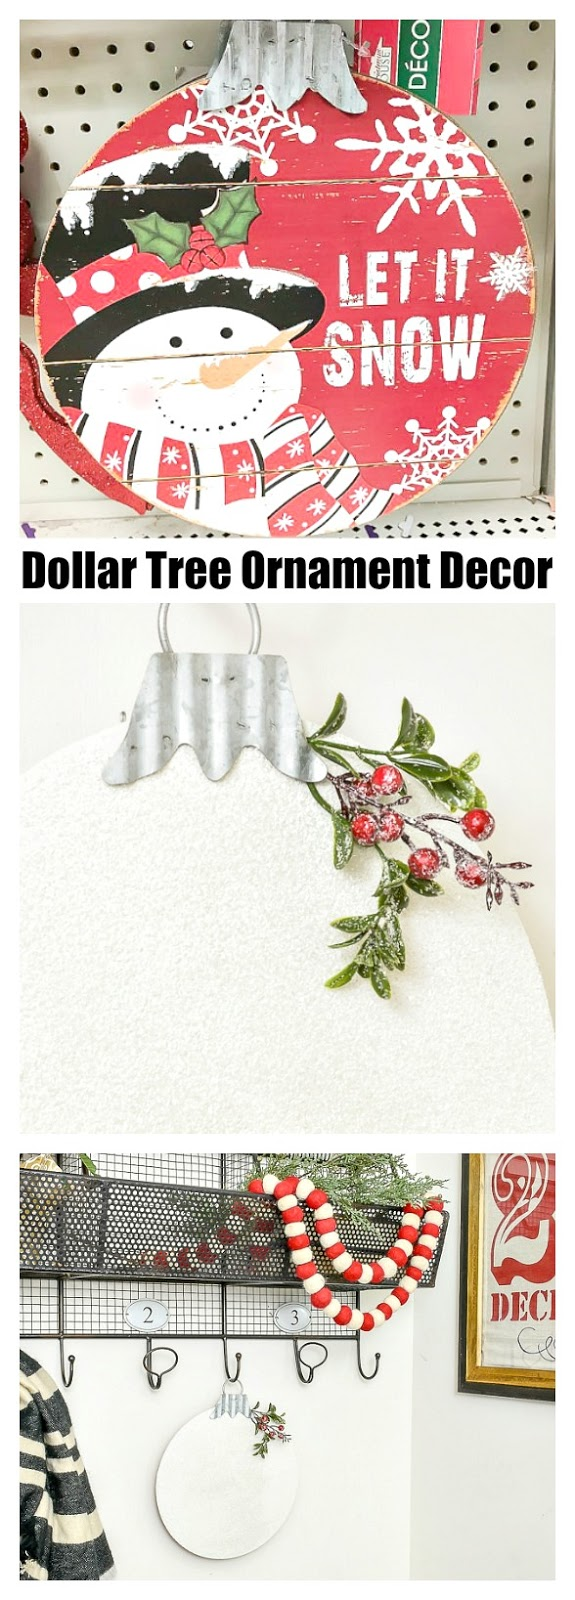 Dollar Tree wall ornament decor makeover